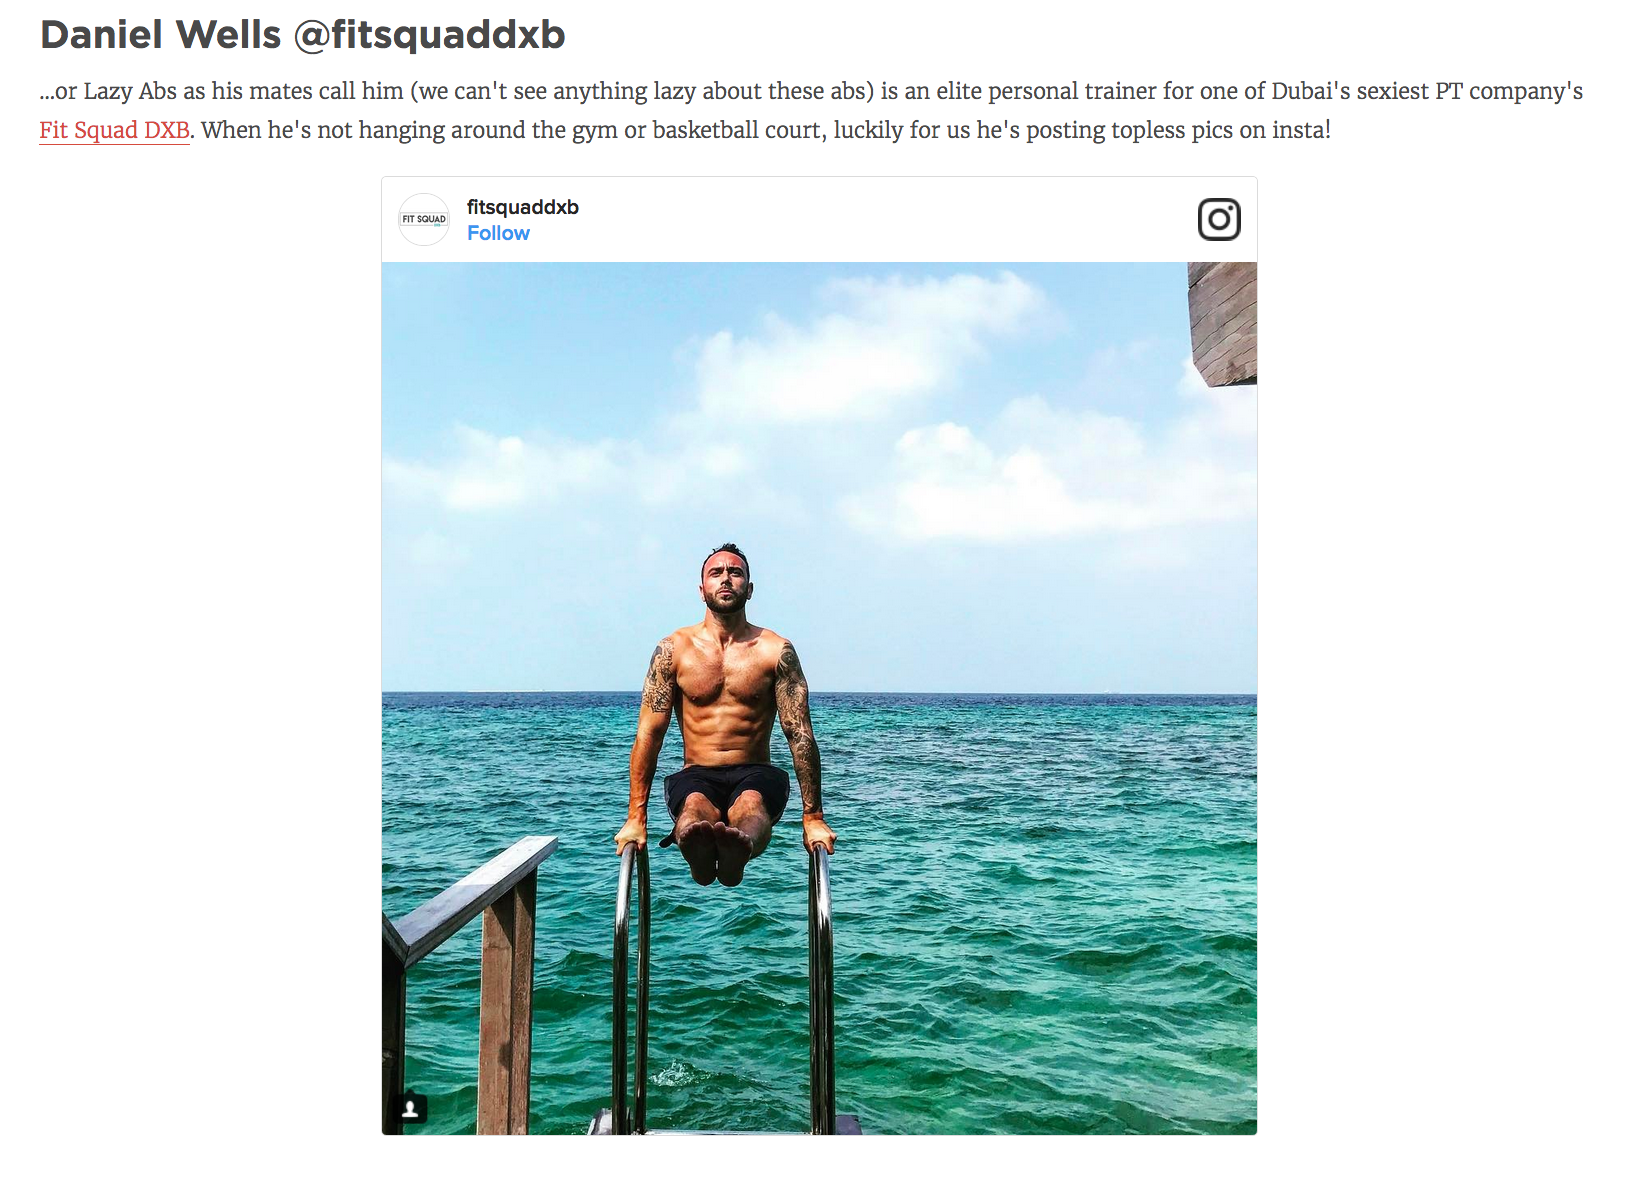 Head over to Lovin Dubai to see the whole article: https://lovindubai.com/best-of/5-of-the-best-looking-pts-in-dubai